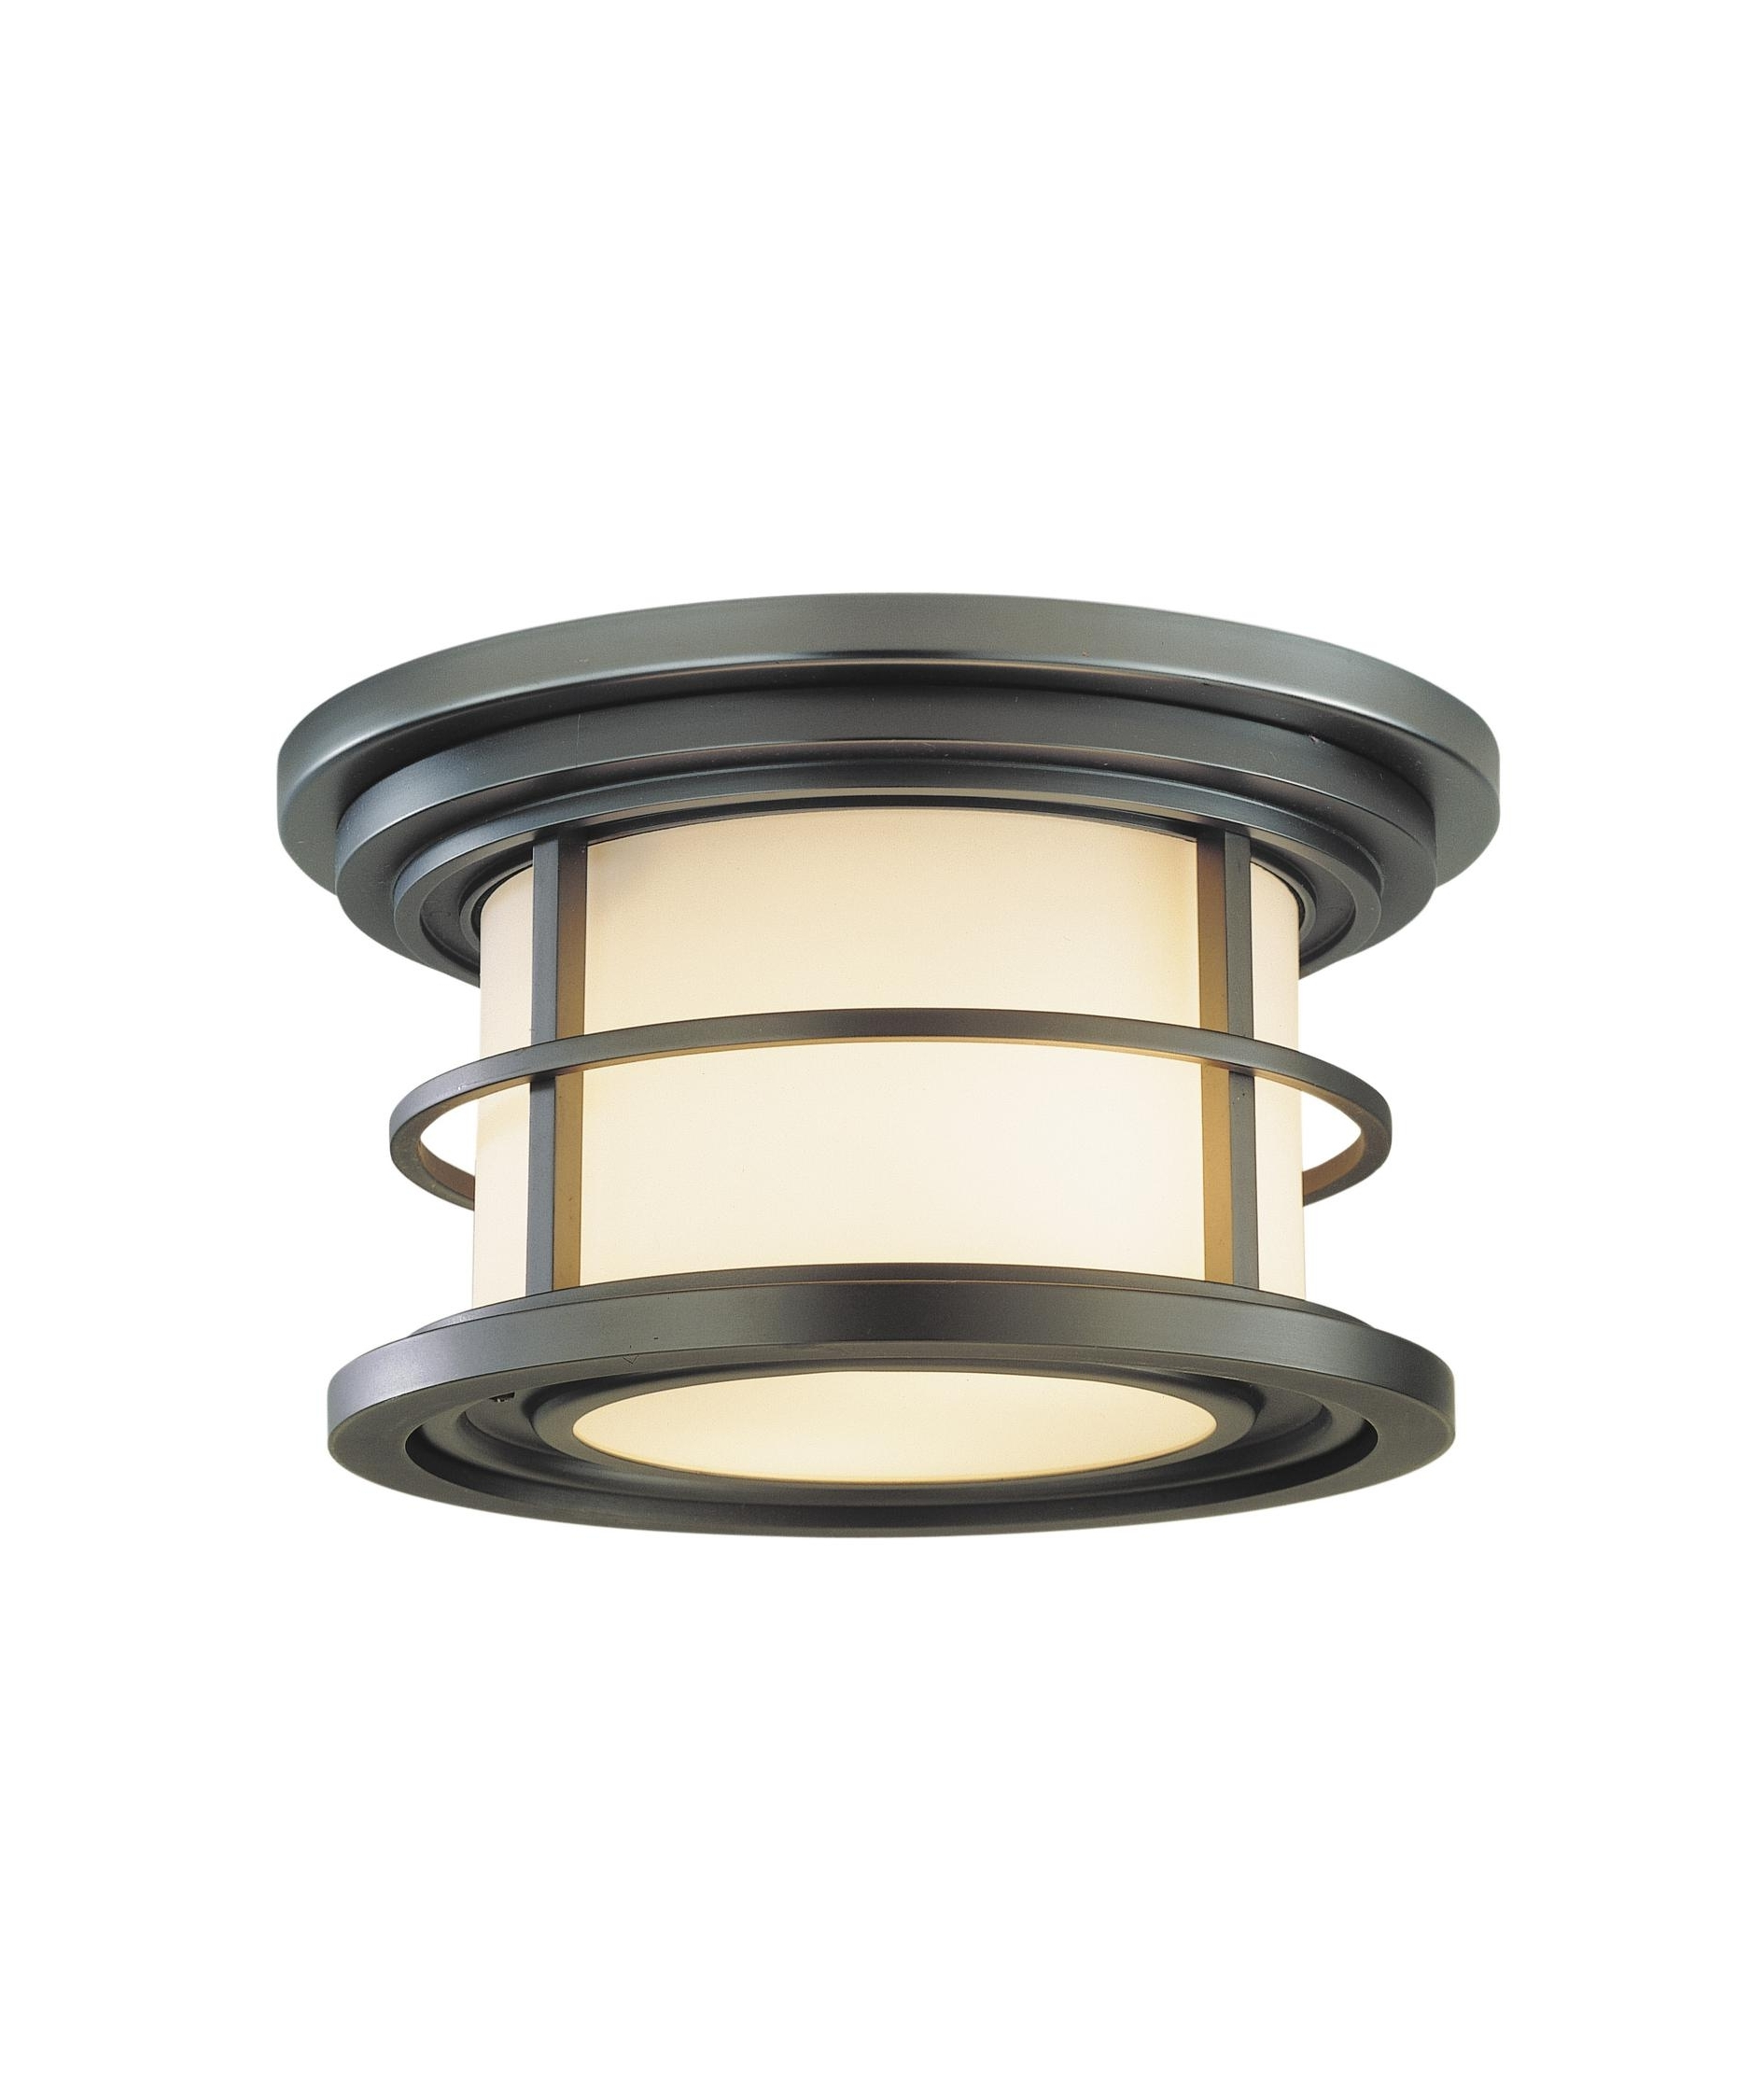 Murray Feiss Ol2213 Lighthouse 10 Inch Wide 2 Light Outdoor Flush For Most Recent Outdoor Ceiling Flush Lights (View 19 of 20)